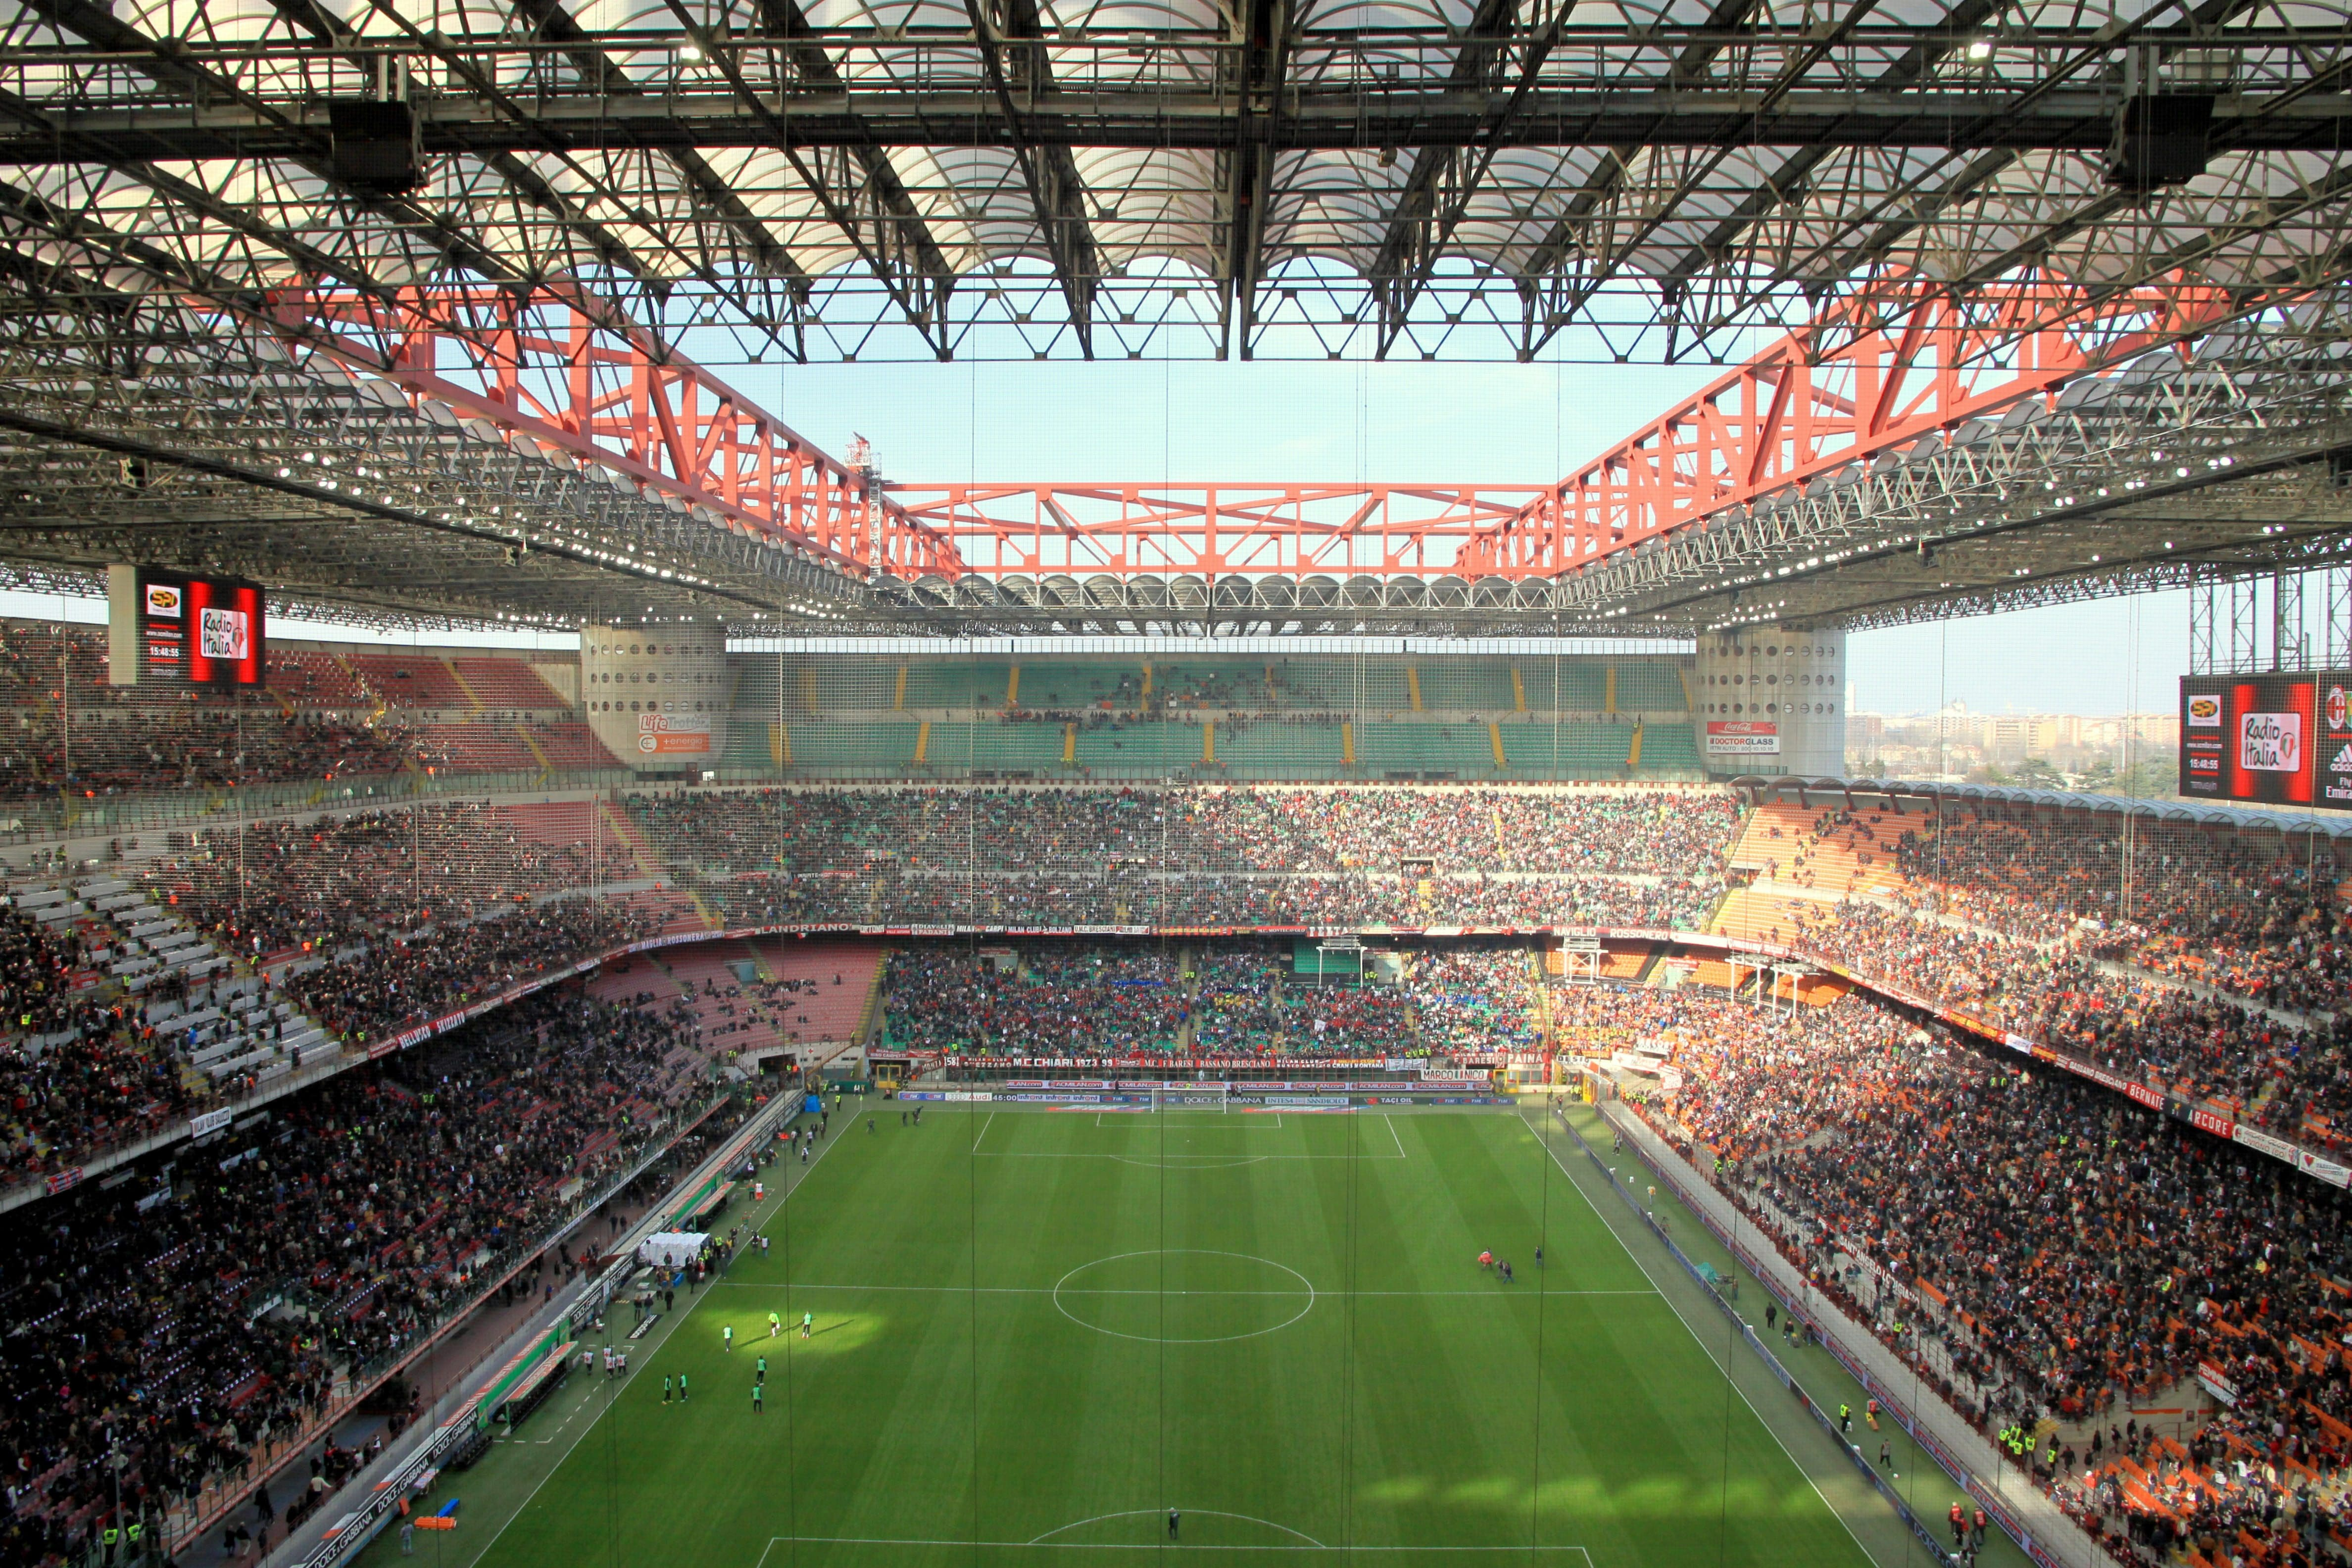 The open-roofed San Siro stadium full of spectators ready for the start of a football match